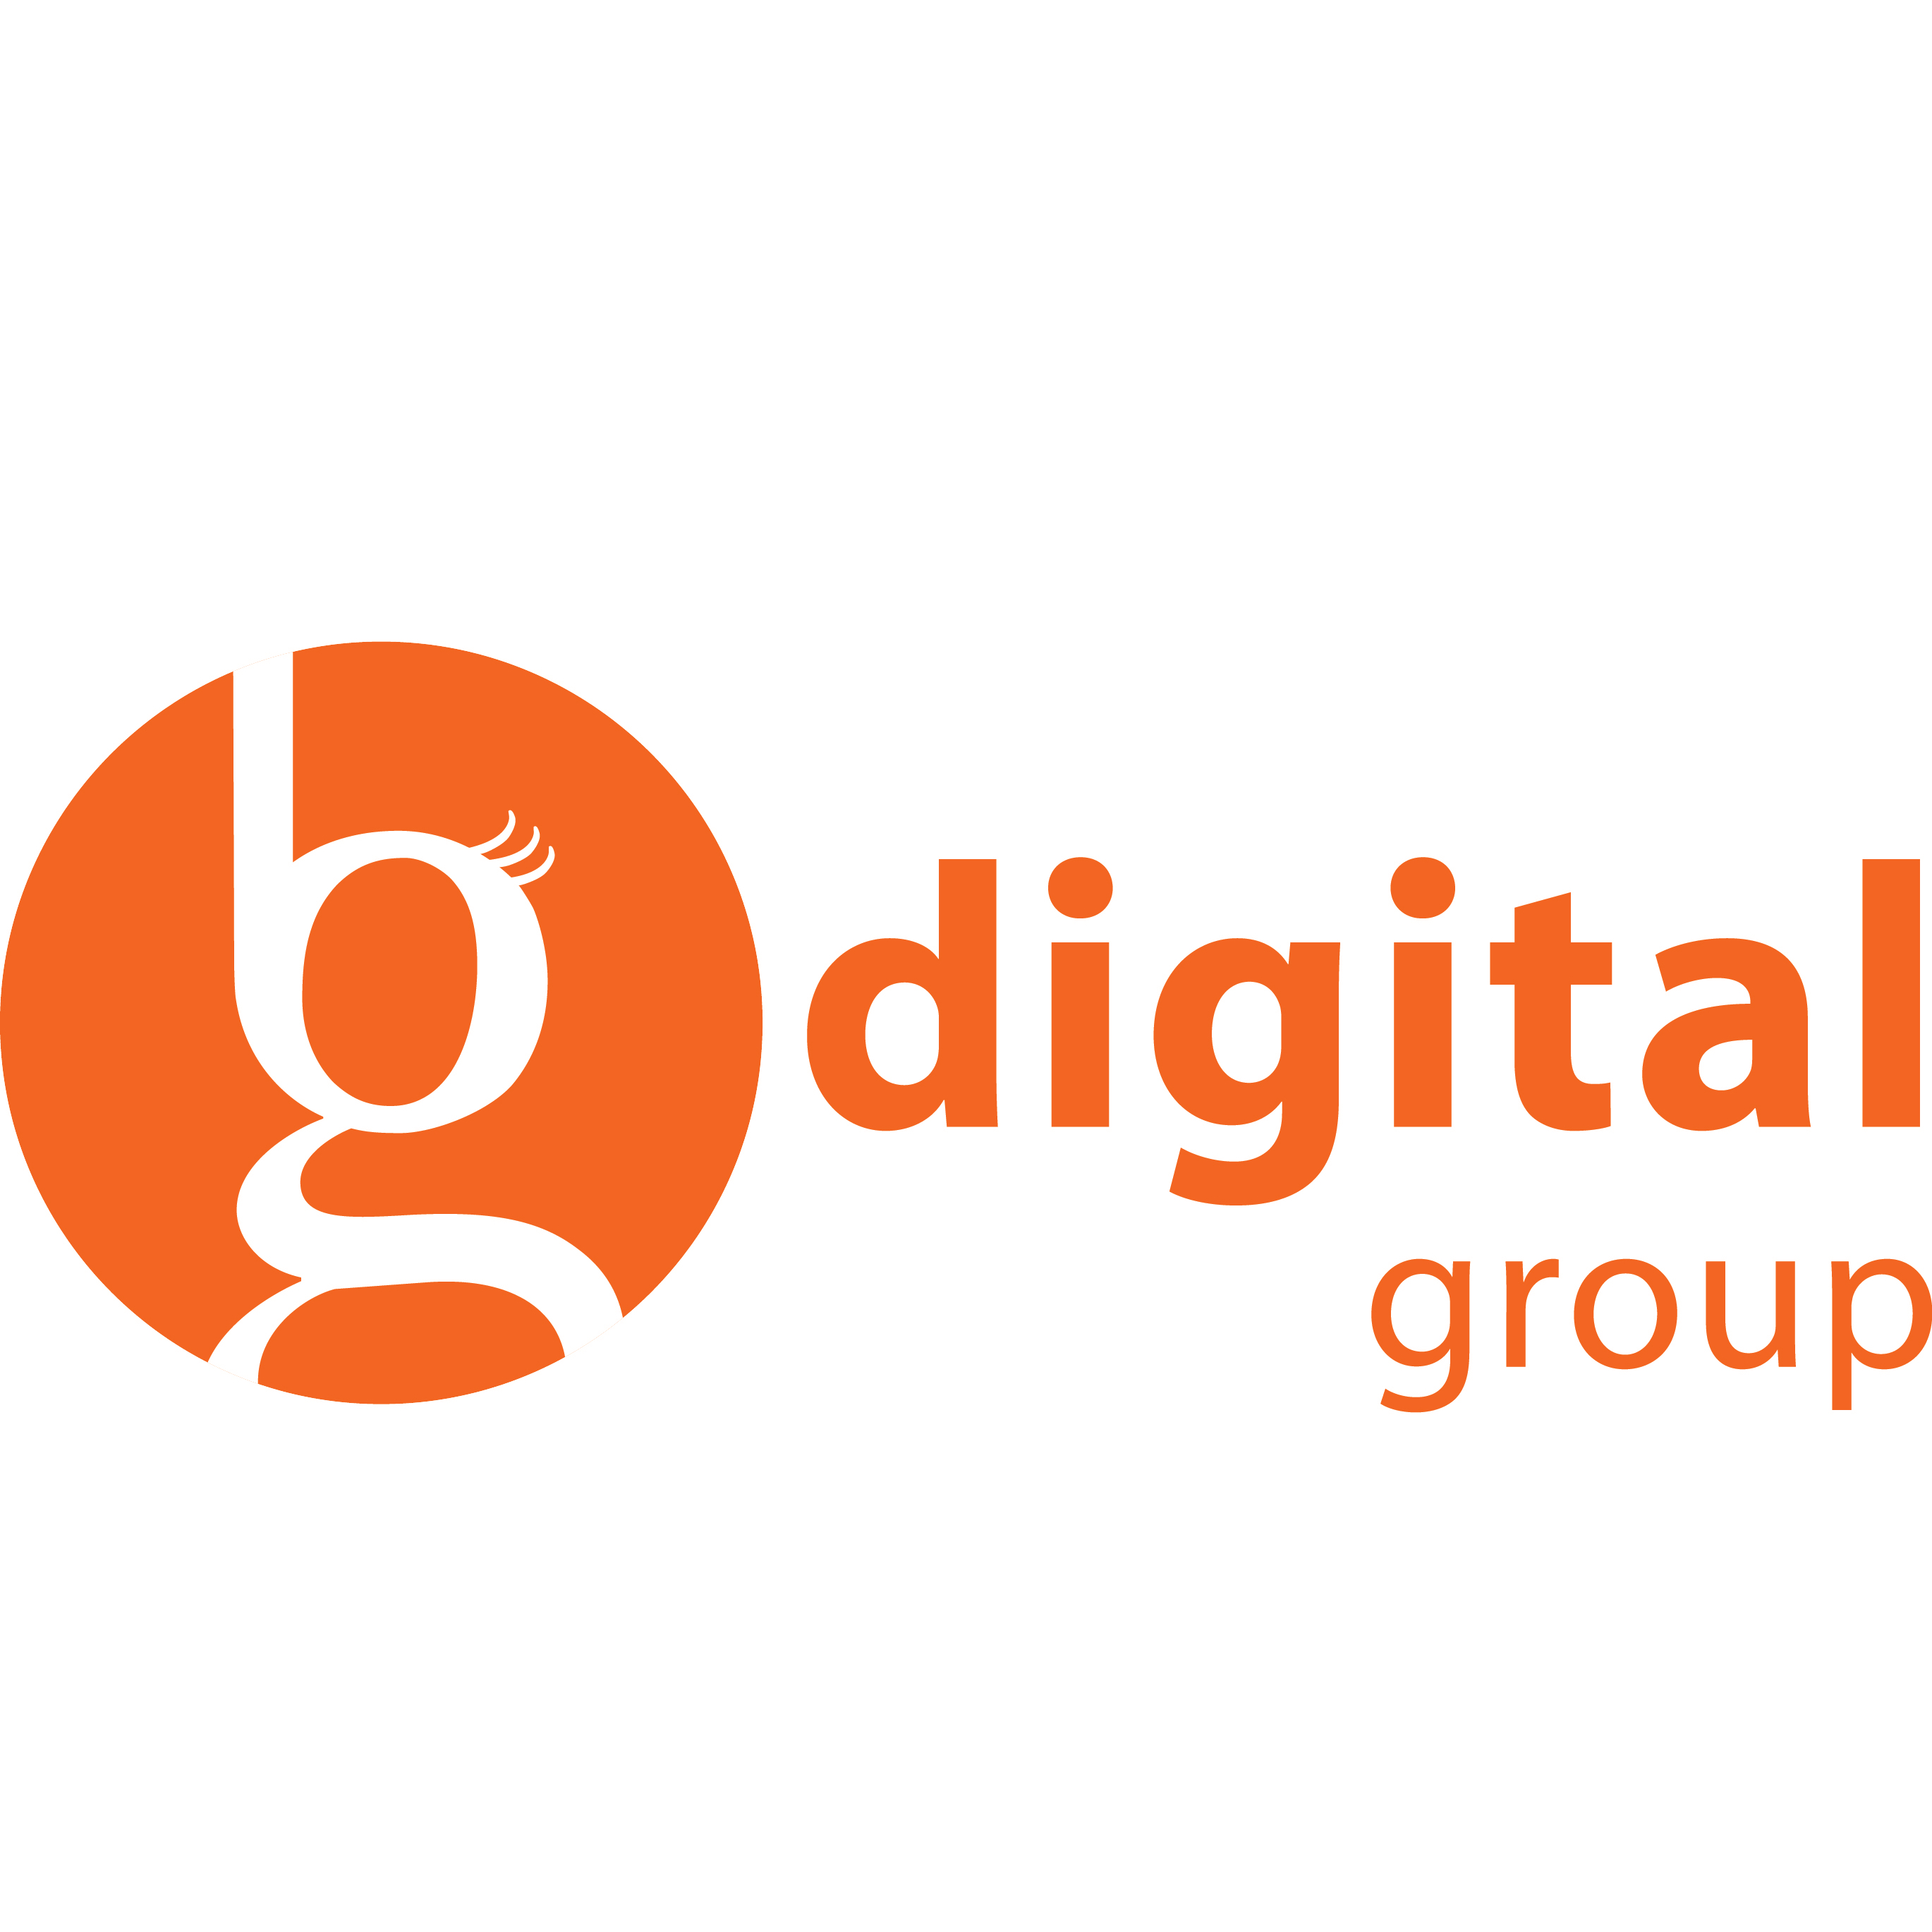 BG Digital Group